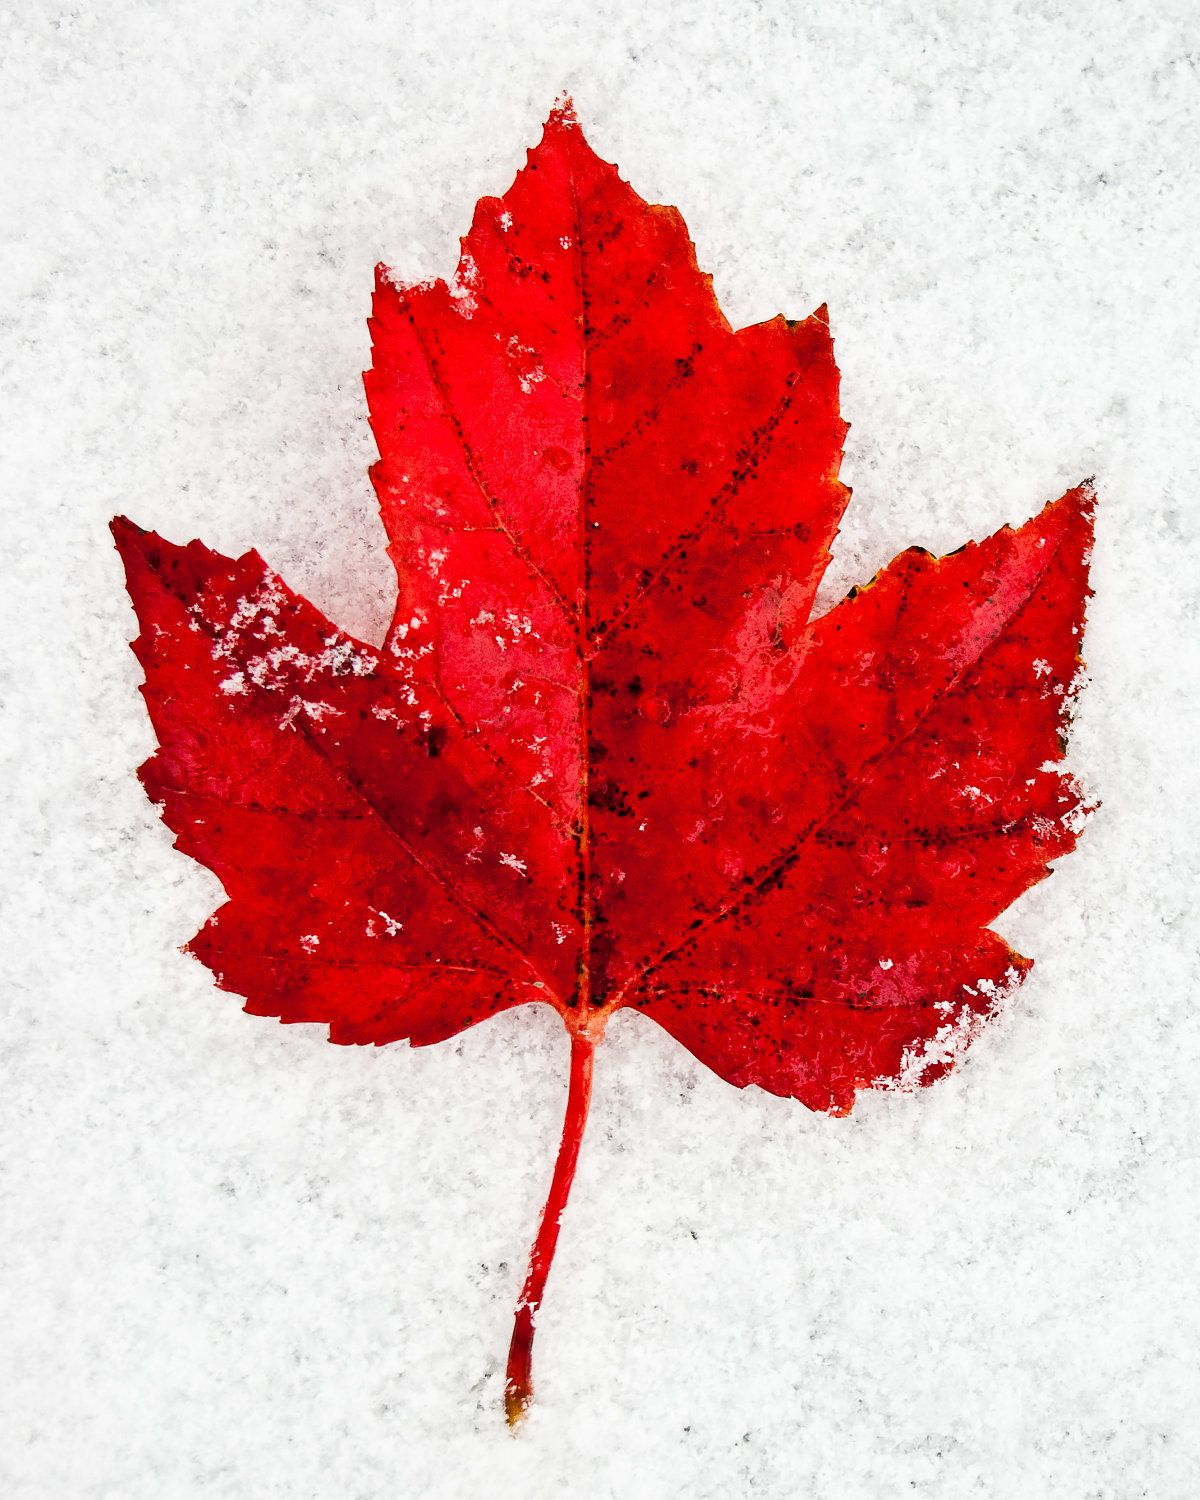 red maple leaf on red autumn leaf in the snow 8 x 10 photography art print 25 00 via etsy maple tree tattoos autumn leaves leaf photography maple tree tattoos autumn leaves